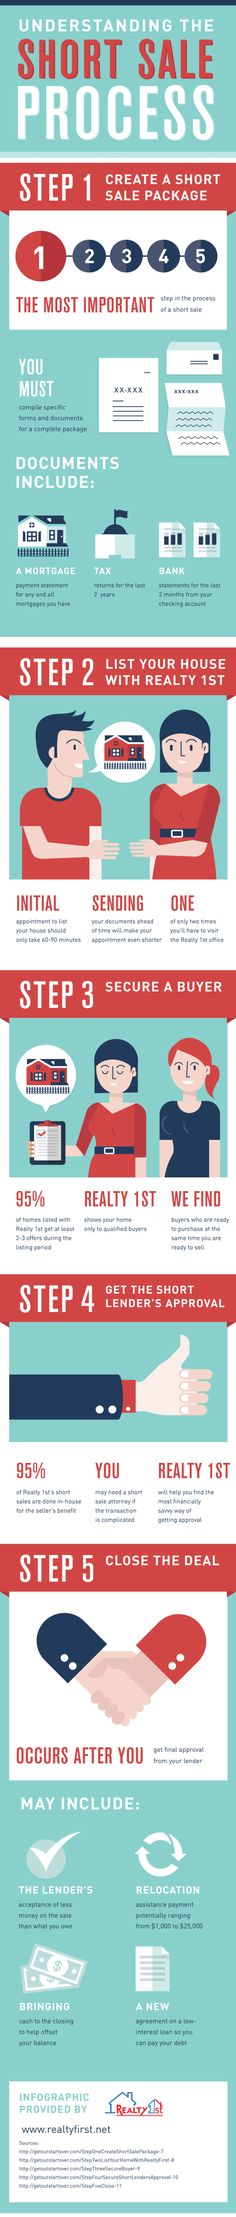 Understanding the Short Sale Process   #RealEstate #infographic